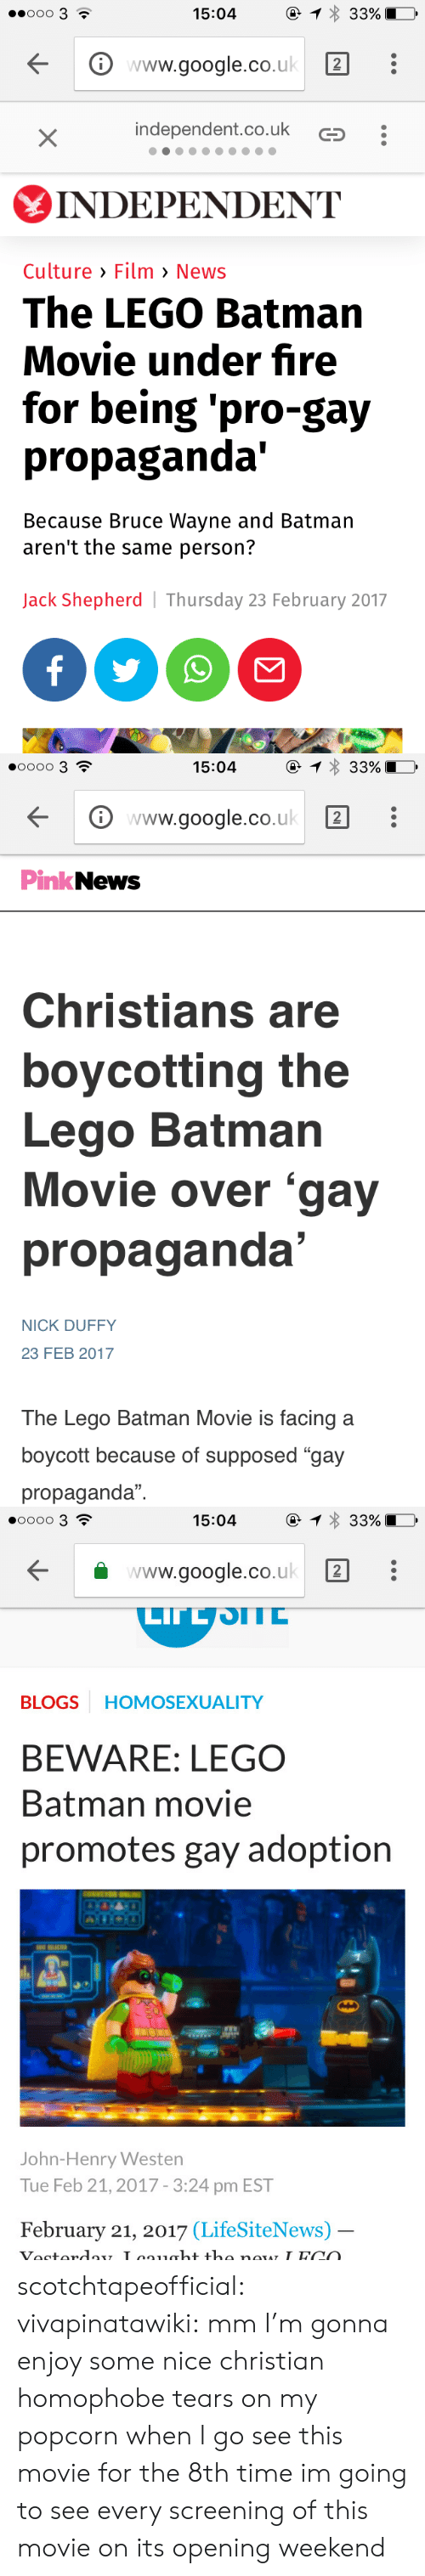 "Feb 2017: 1 33%  ooo 3 ?  15:04  www.google.co.uk  independent.co.uk  X  INDEPΕNDENT  Culture Film > News  The LEGO Batman  Movie under fire  for being 'pro-gay  propaganda'  Because Bruce Wayne and Batman  aren't the same person?  Jack Shepherd| Thursday 23 February 2017  f   1 33%  oo0o 3  15:04  www.google.co.uk  PinkNews  Christians are  boycotting the  Lego Batman  Movie over 'gay  propaganda'  NICK DUFFY  23 FEB 2017  The Lego Batman Movie is facing a  boycott because of supposed ""gay  propaganda""   @ 1 33%  O0oo 3  15:04  www.google.co.uk  2  LITLSTC  HOMOSEXUALITY  BLOGS  BEWARE: LEGO  Batman movie  promotes gay adoption  ONVE  OWN  John-Henry Westen  Tue Feb 21, 2017 - 3:24 pm EST  February 21, 2017 (LifeSiteNews) -  _  Vesterday Loaght the new IFCO scotchtapeofficial: vivapinatawiki: mm I'm gonna enjoy some nice christian homophobe tears on my popcorn when I go see this movie for the 8th time im going to see every screening of this movie on its opening weekend"